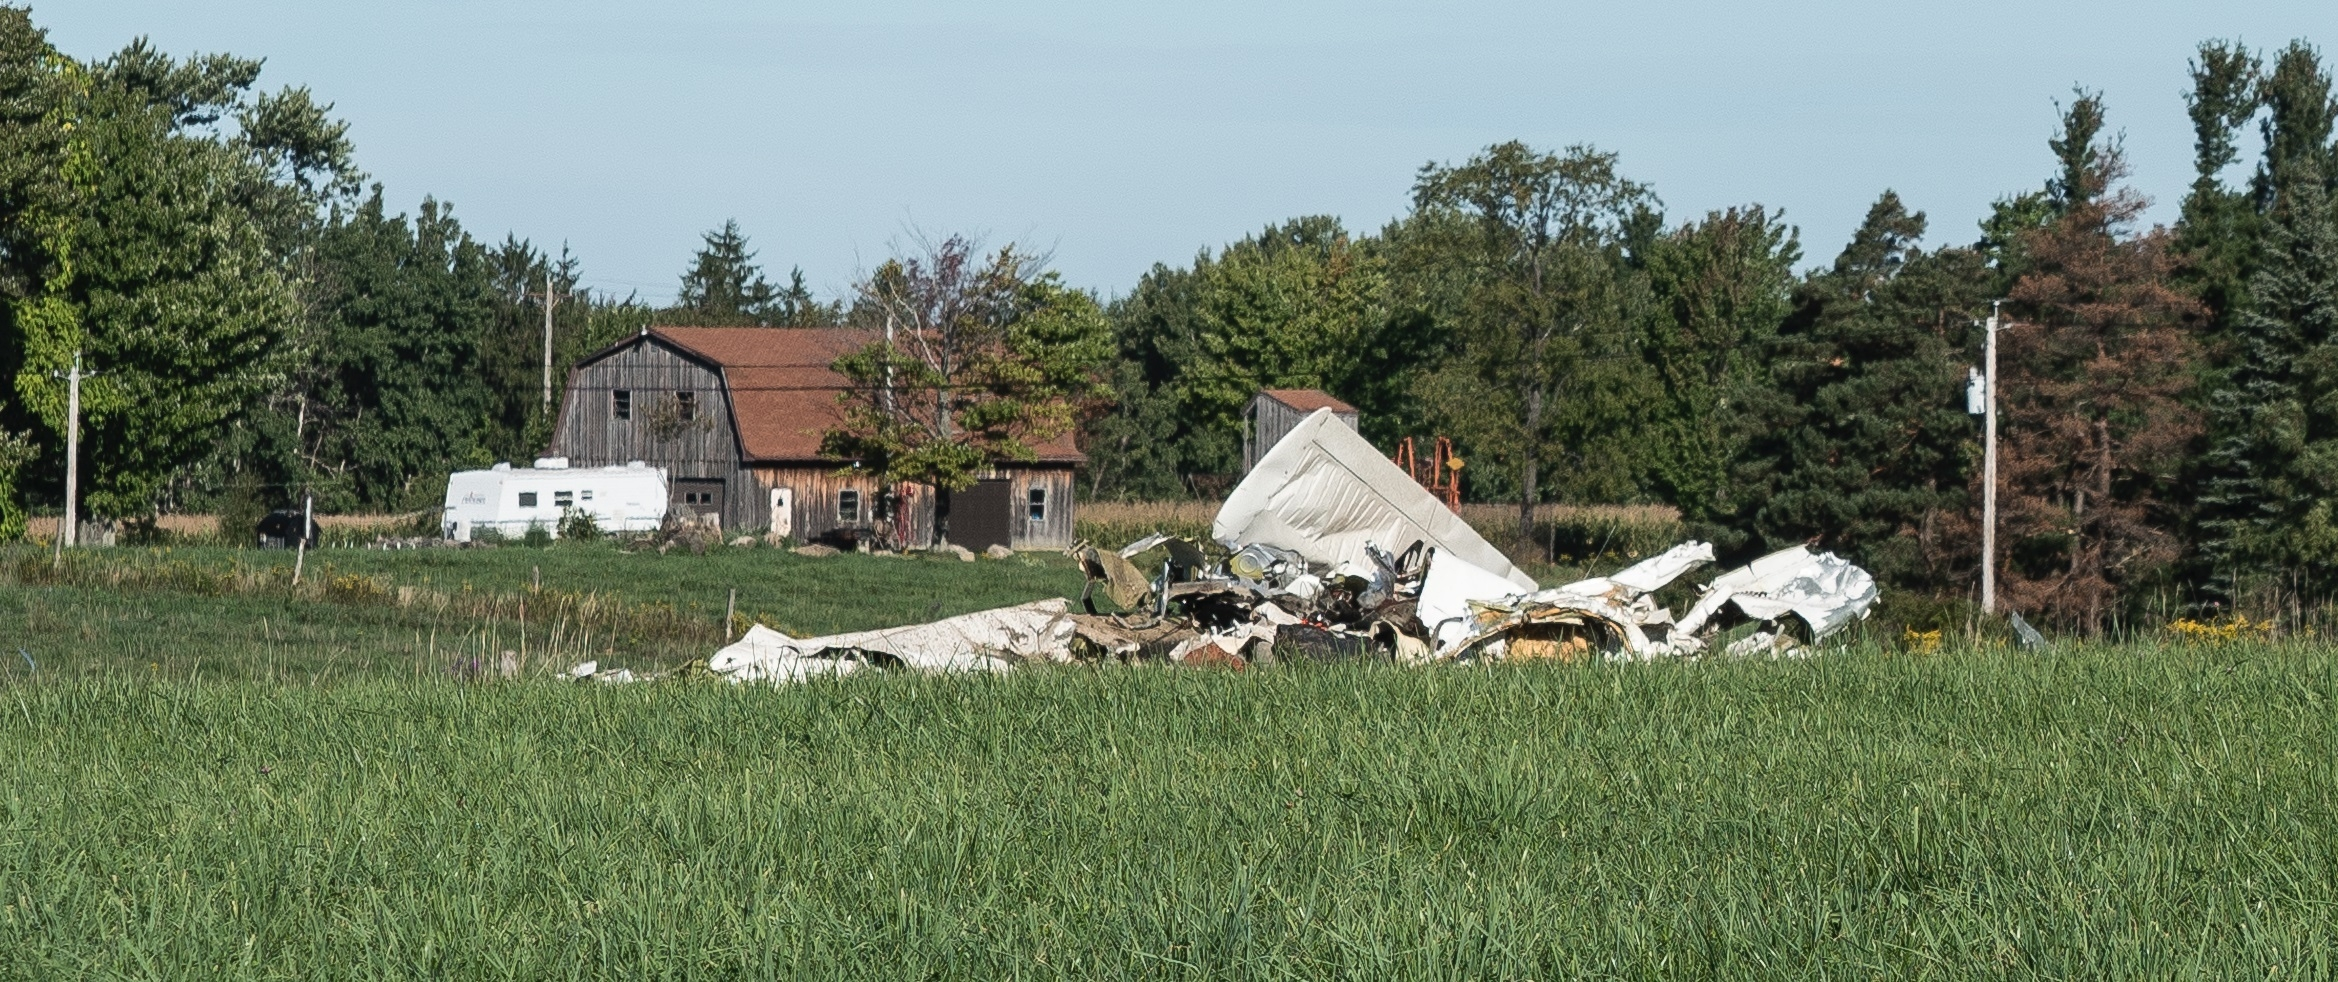 Part of the wreckage in North Collins on Sunday morning. (Photo courtesy of Brian Schmitt)